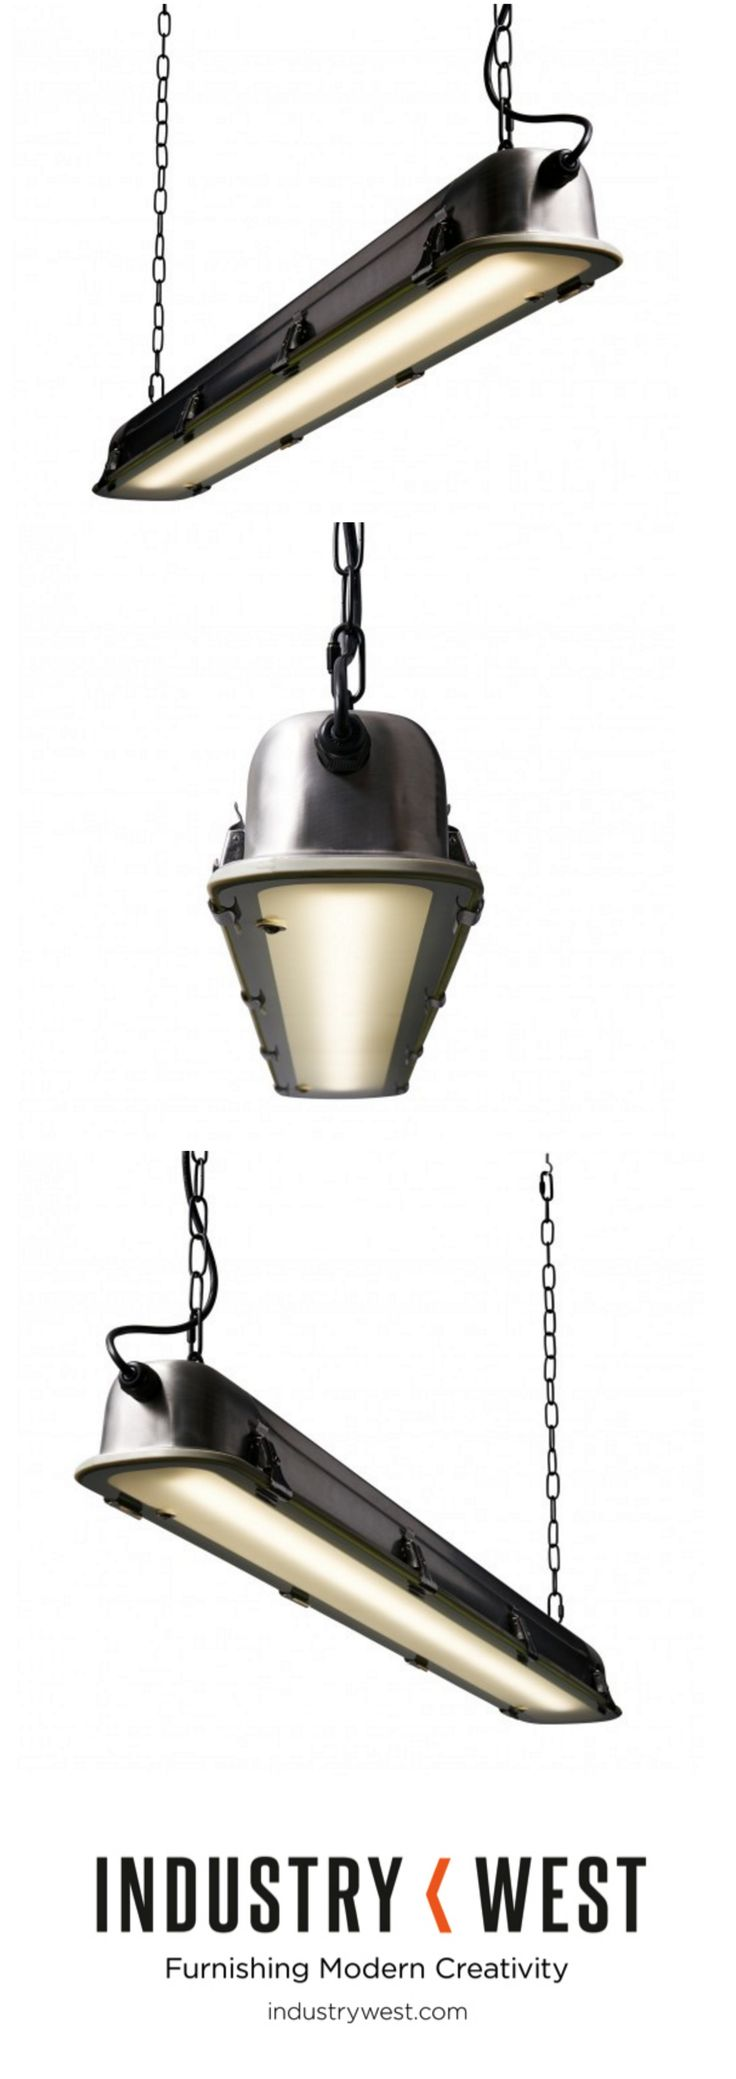 "Matt black metal canopy, black textile cable, stainless steel lamp shade with tempered glass cover. Specifies (1) T8 bulb at a length of 47.17"". Bulb not included."